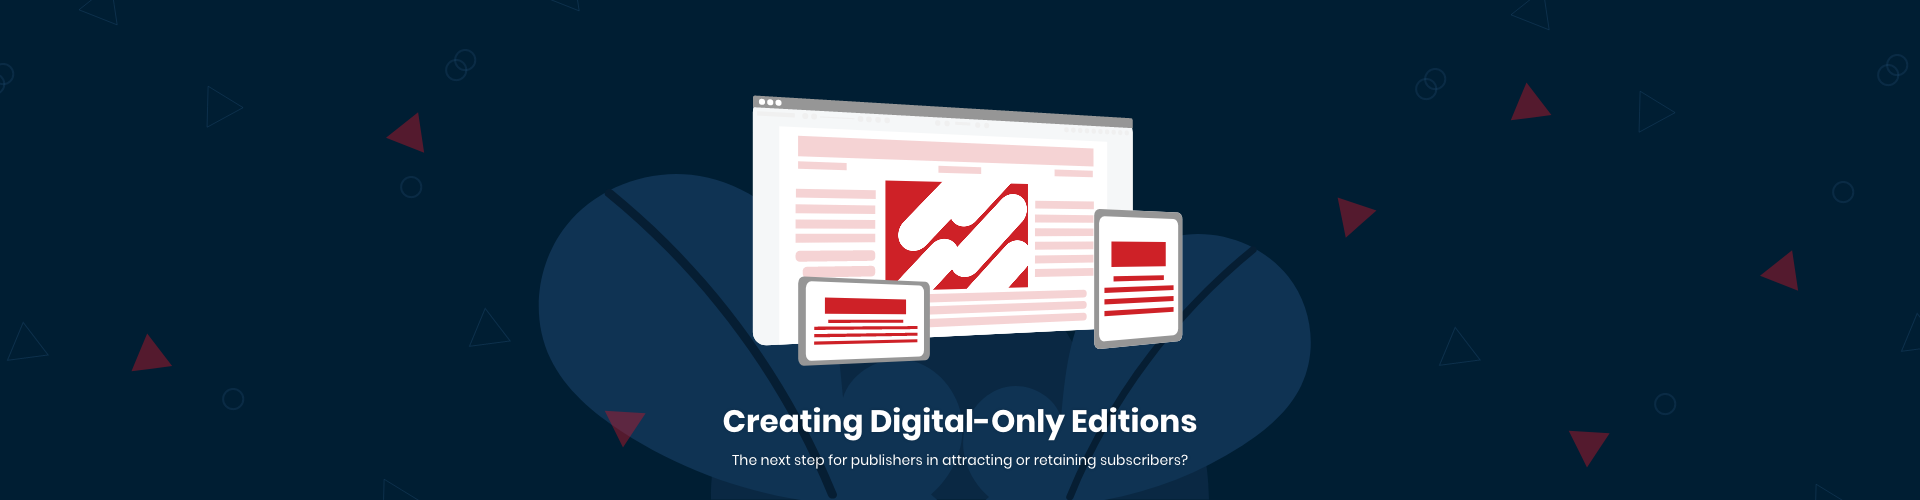 Exploring Digital-Only Editions